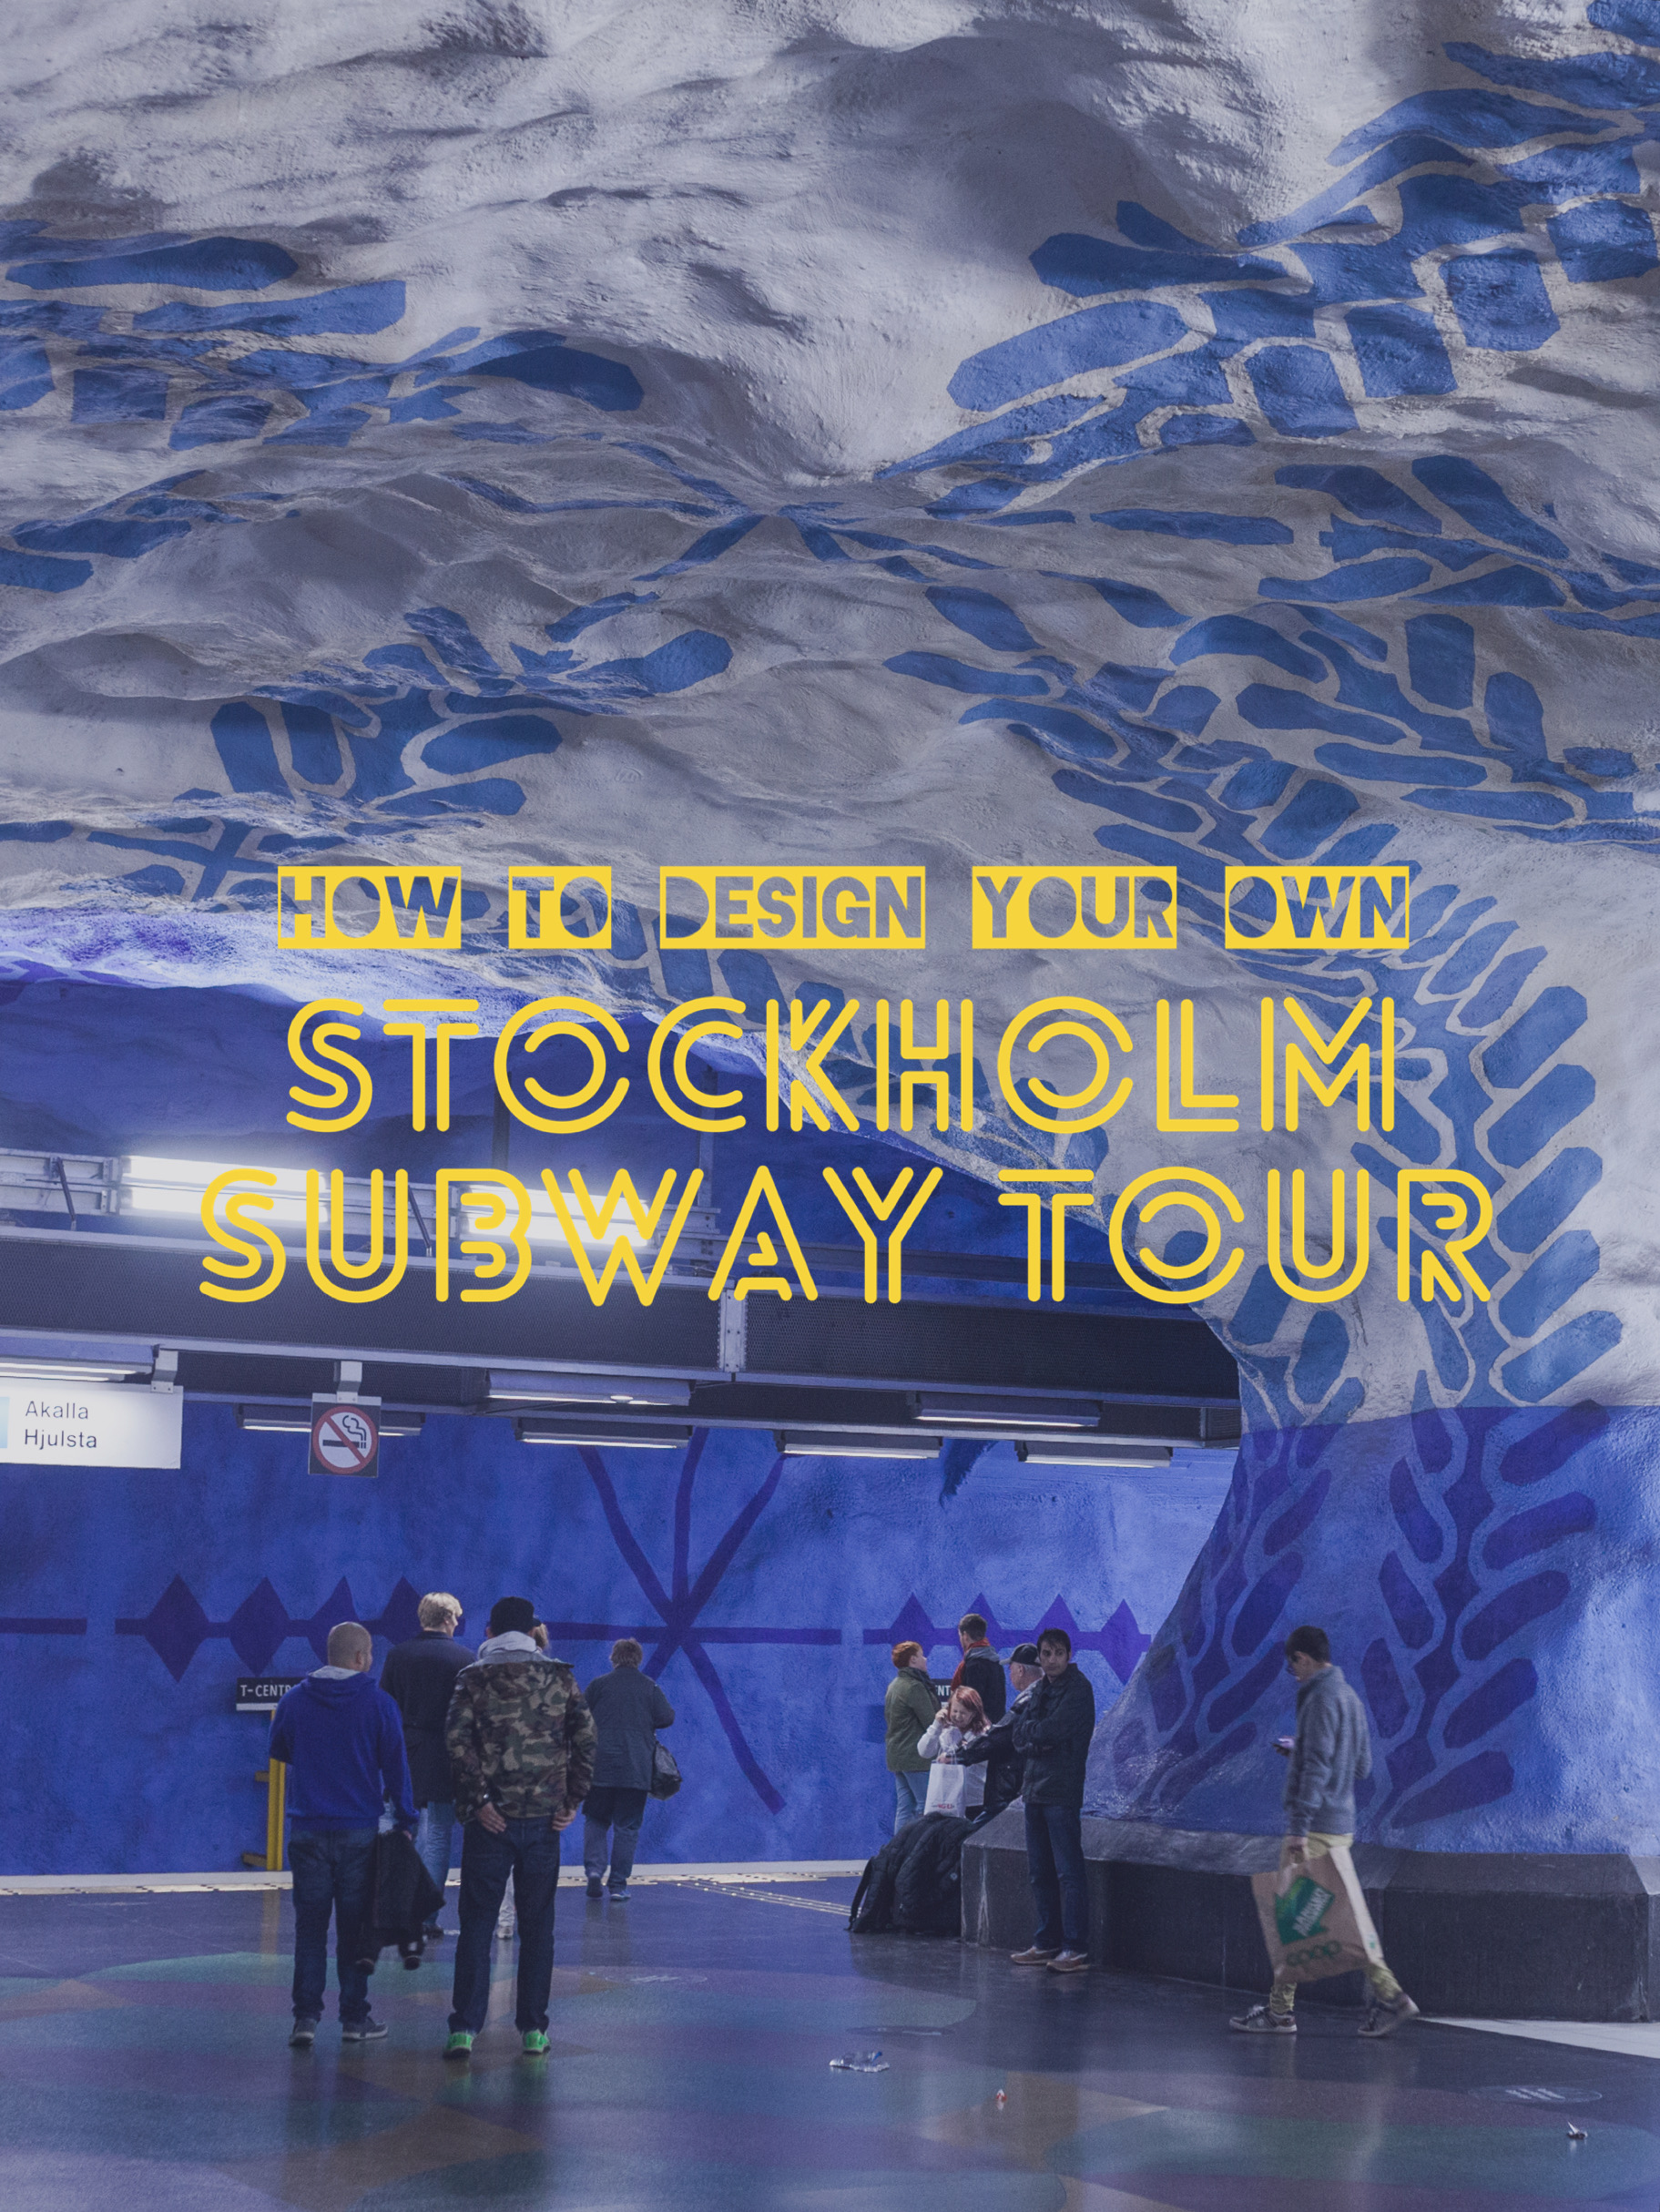 How to Design a Perfect Stockholm Subway Tour on Your Own